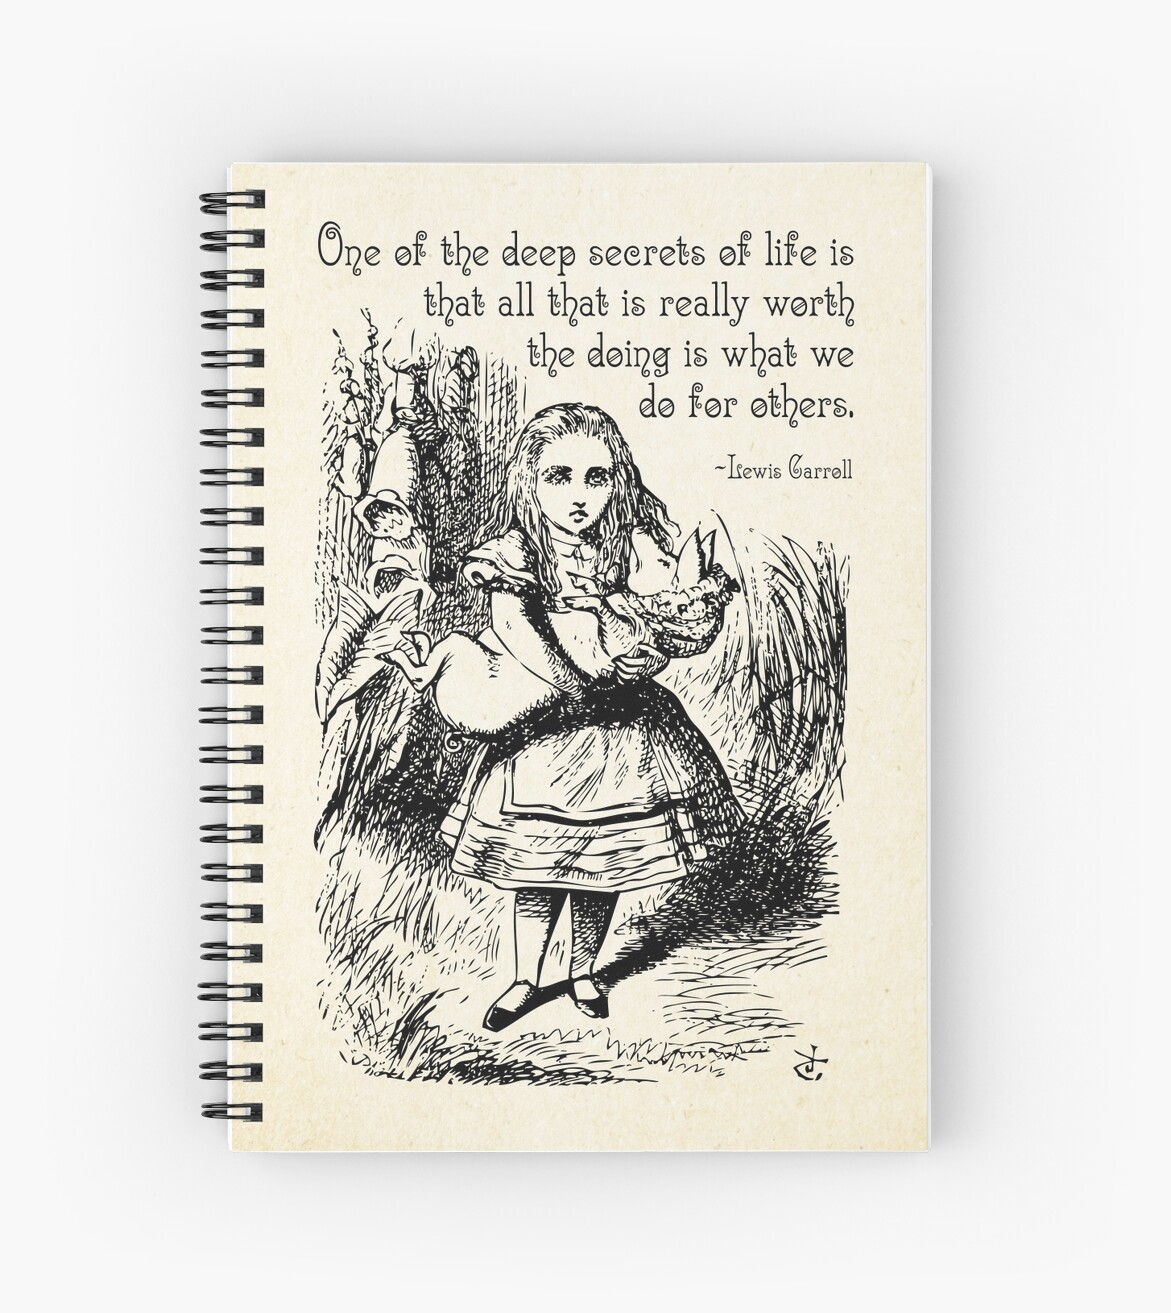 the life and times of lewis carroll Lewis carroll (charles lutwidge  shop and catering opening times vary  further information about the life of lewis carroll can be found here via the oxford.